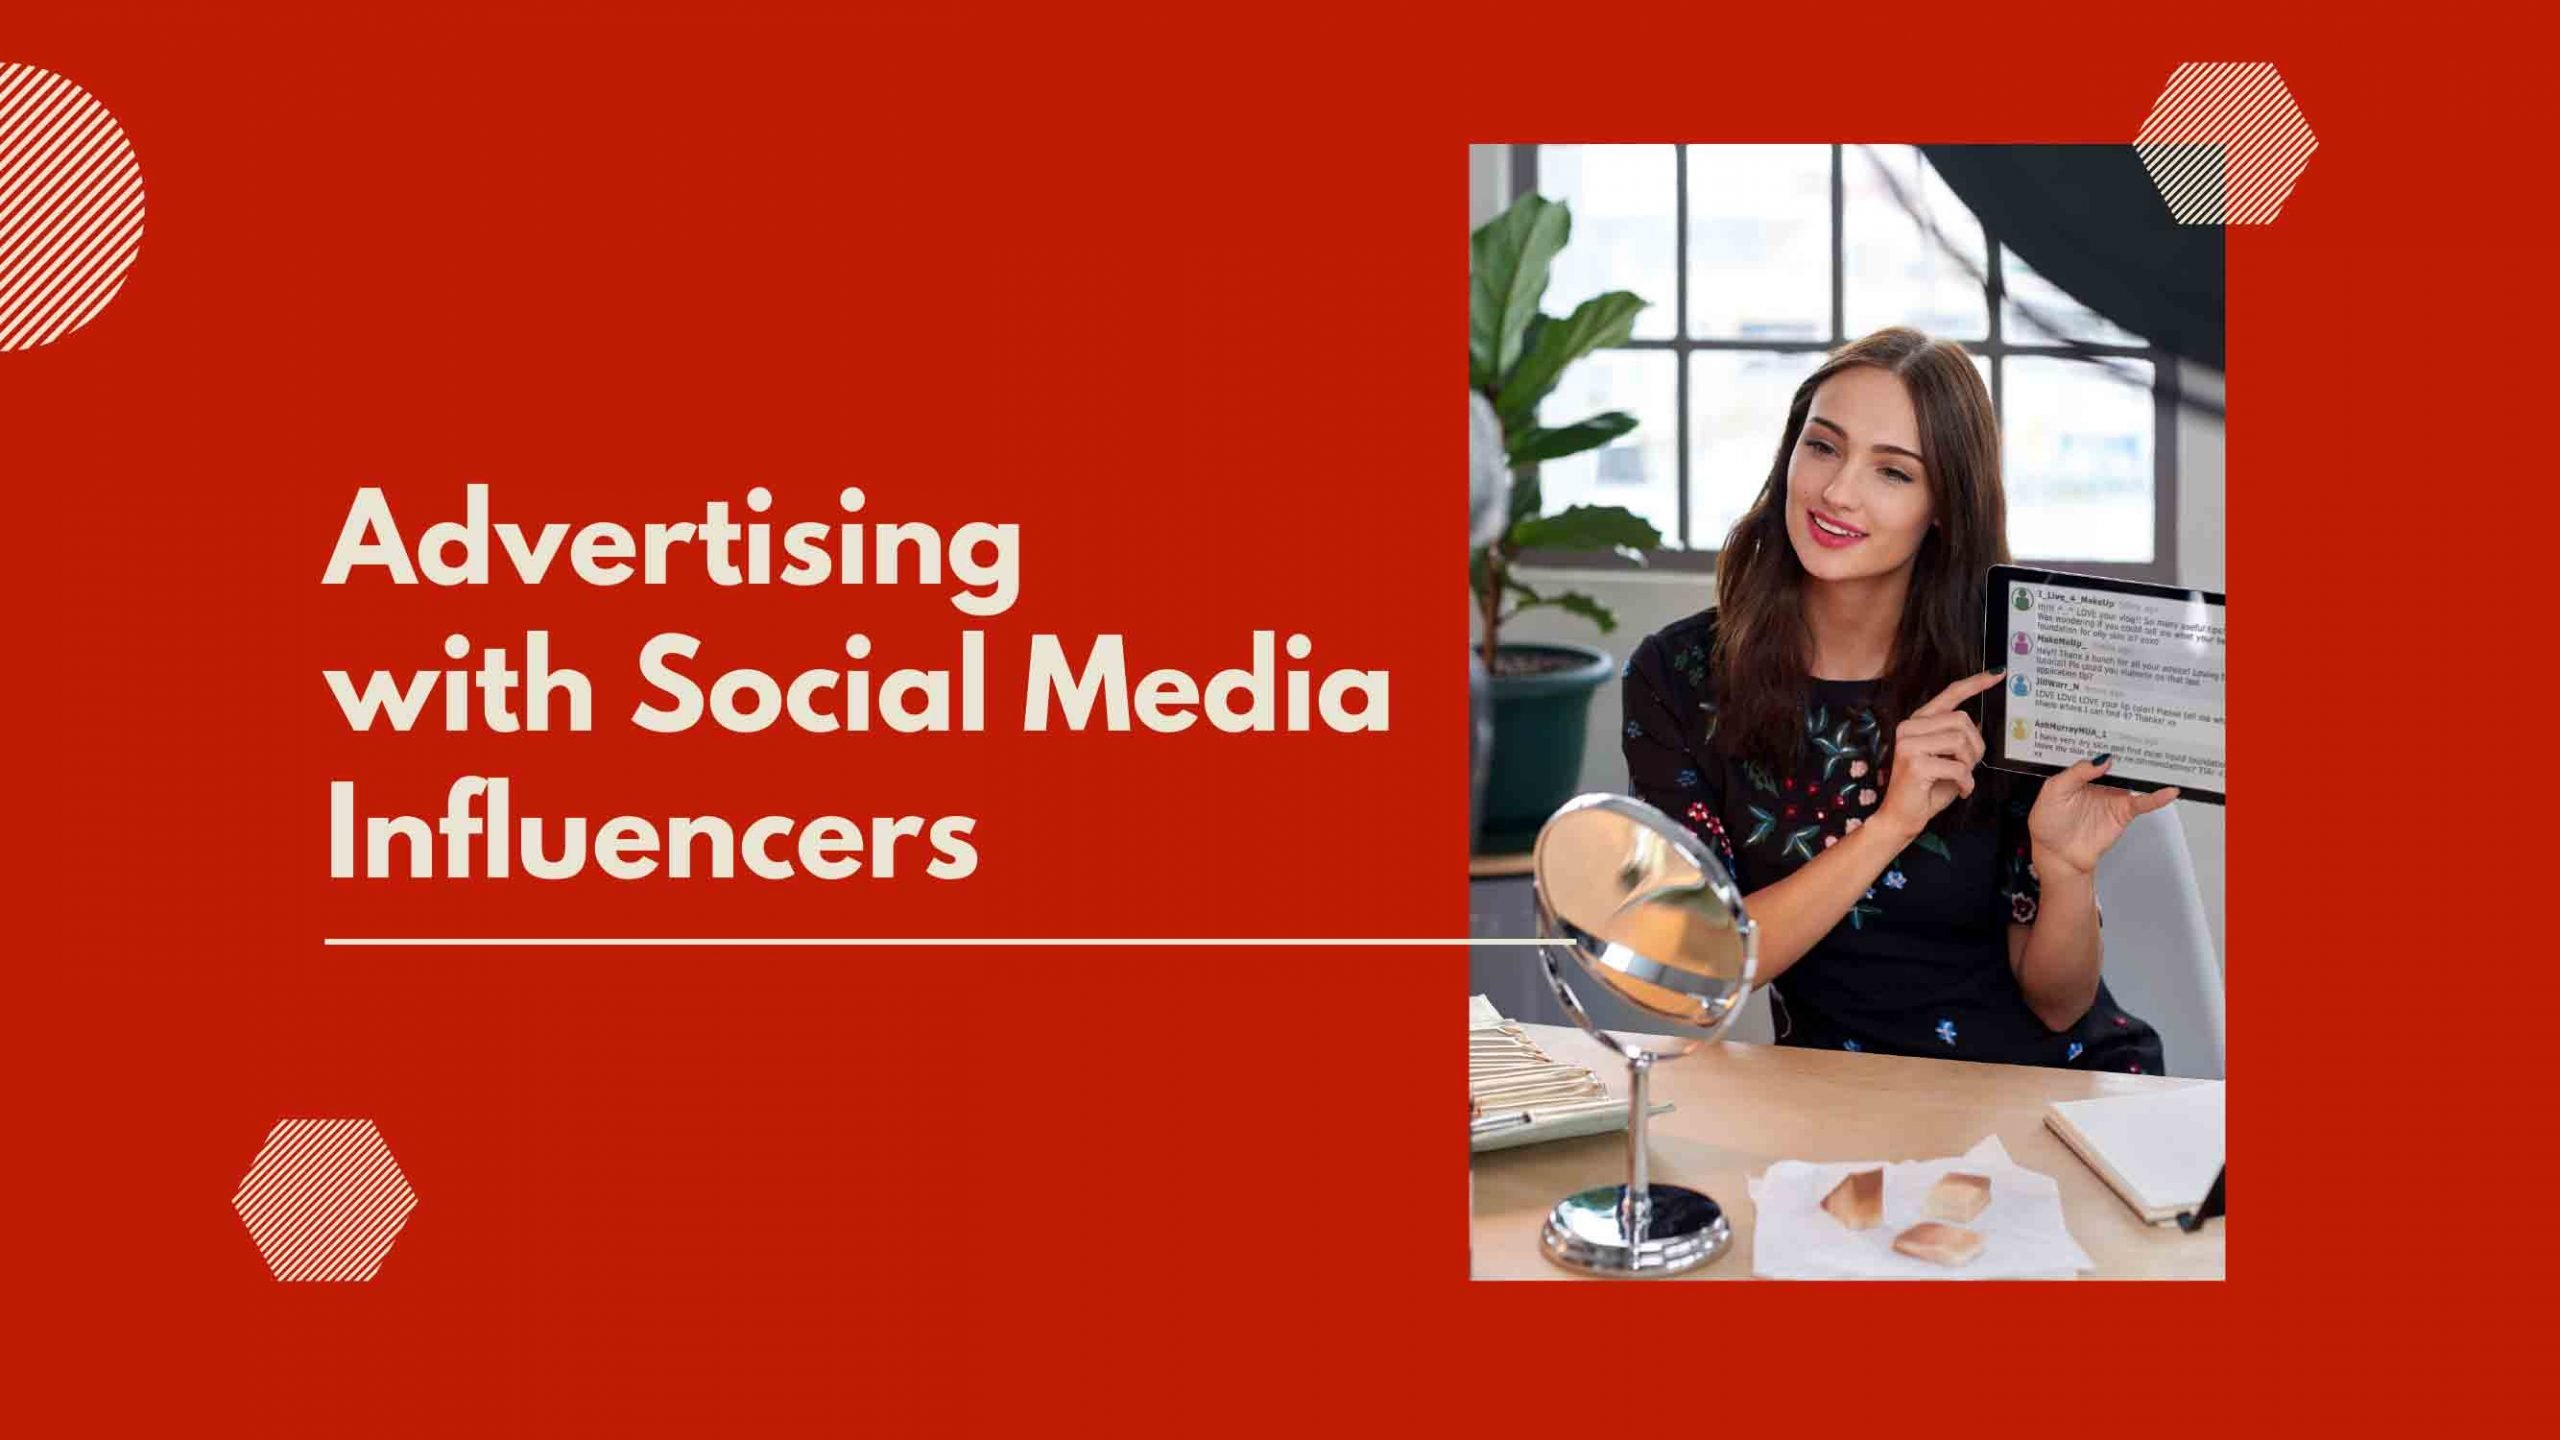 How To Advertise With Social Media Influencers!